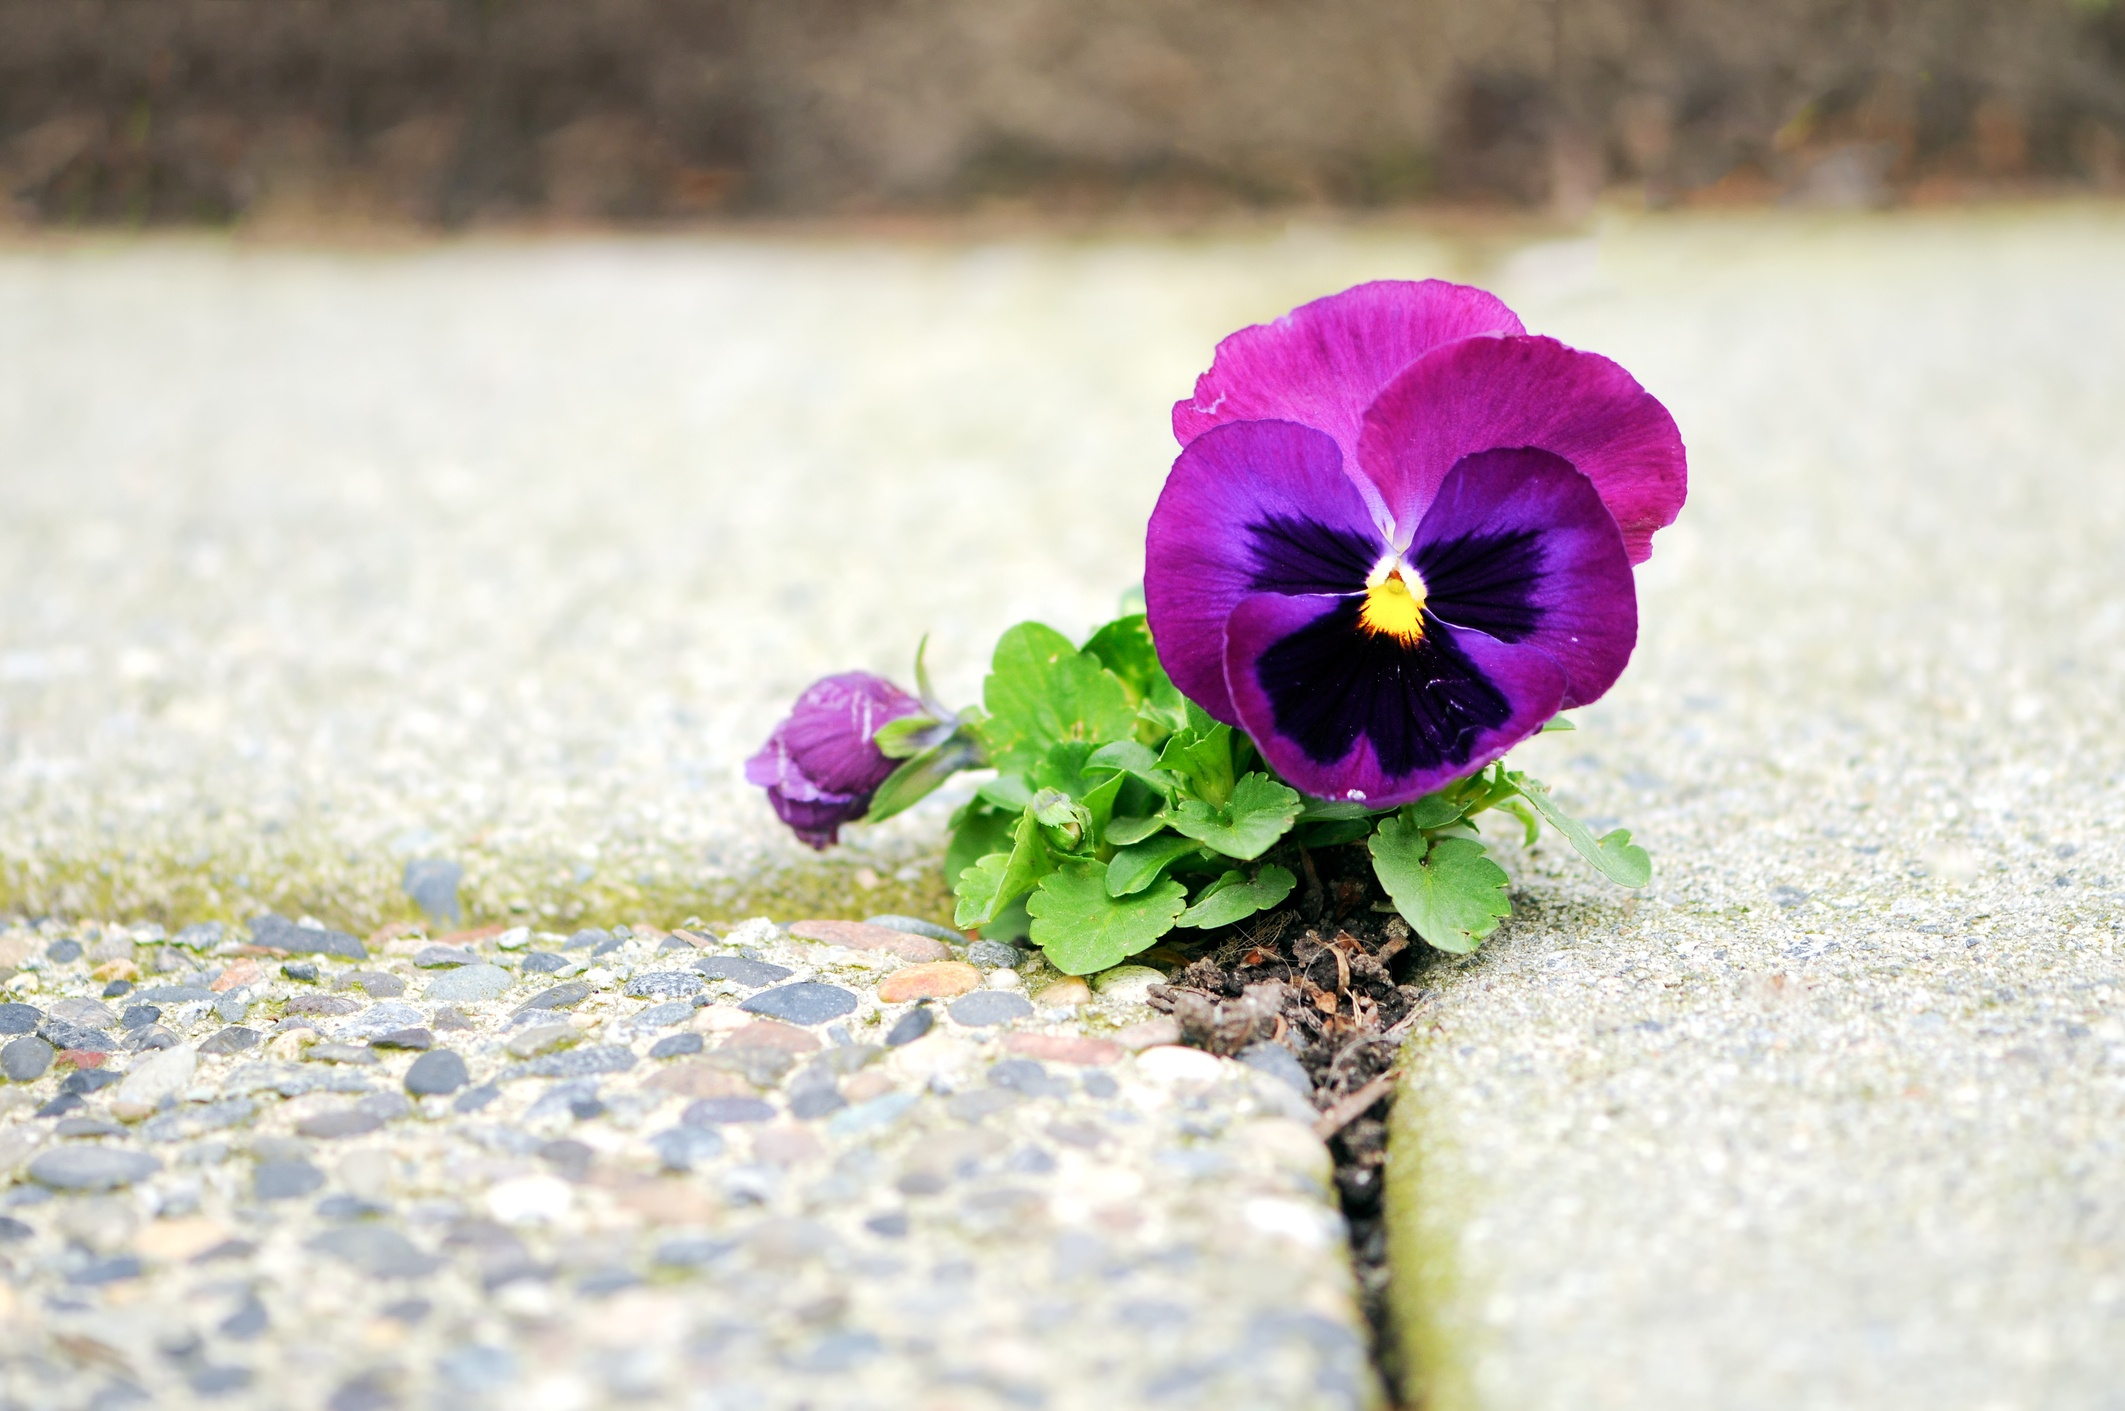 Purple pansy growing in a crack of sidewalk